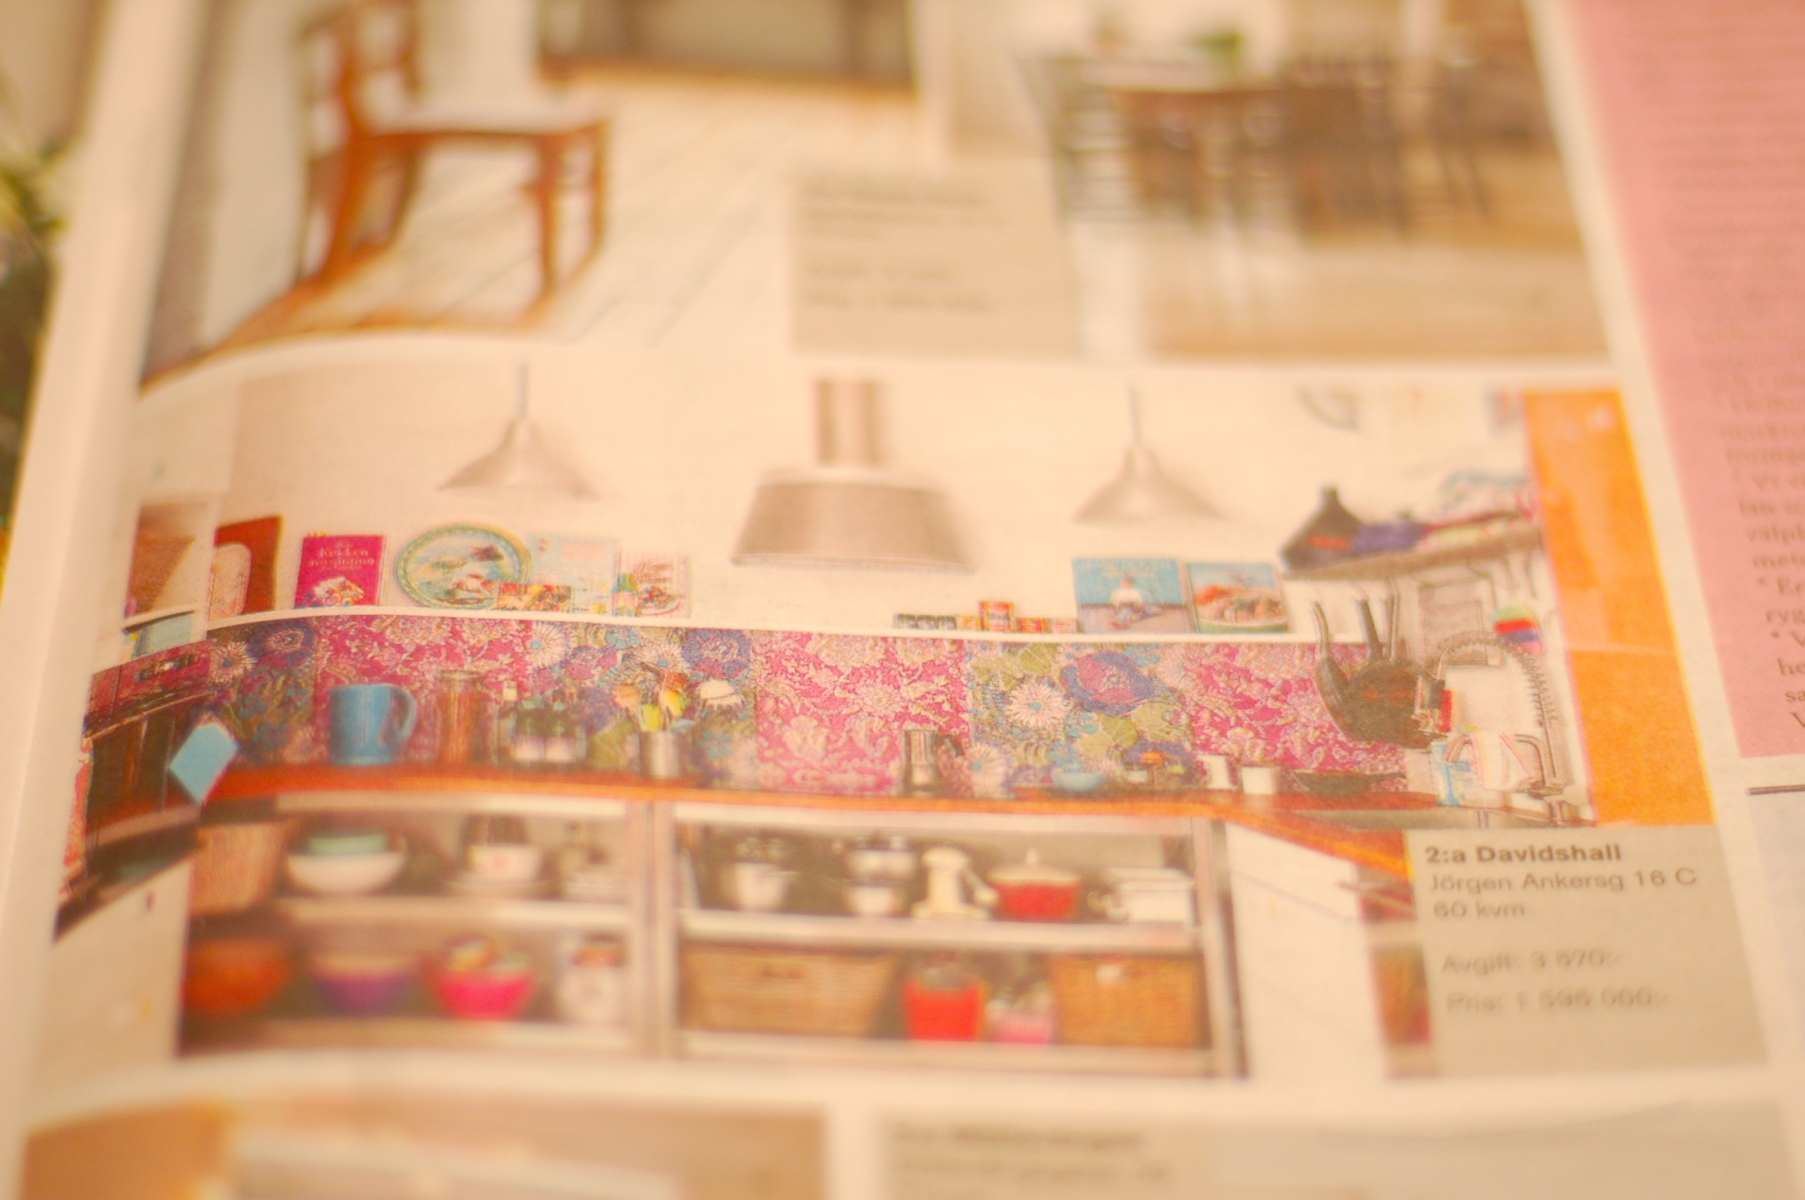 add in the paper showing my colourful kitchen